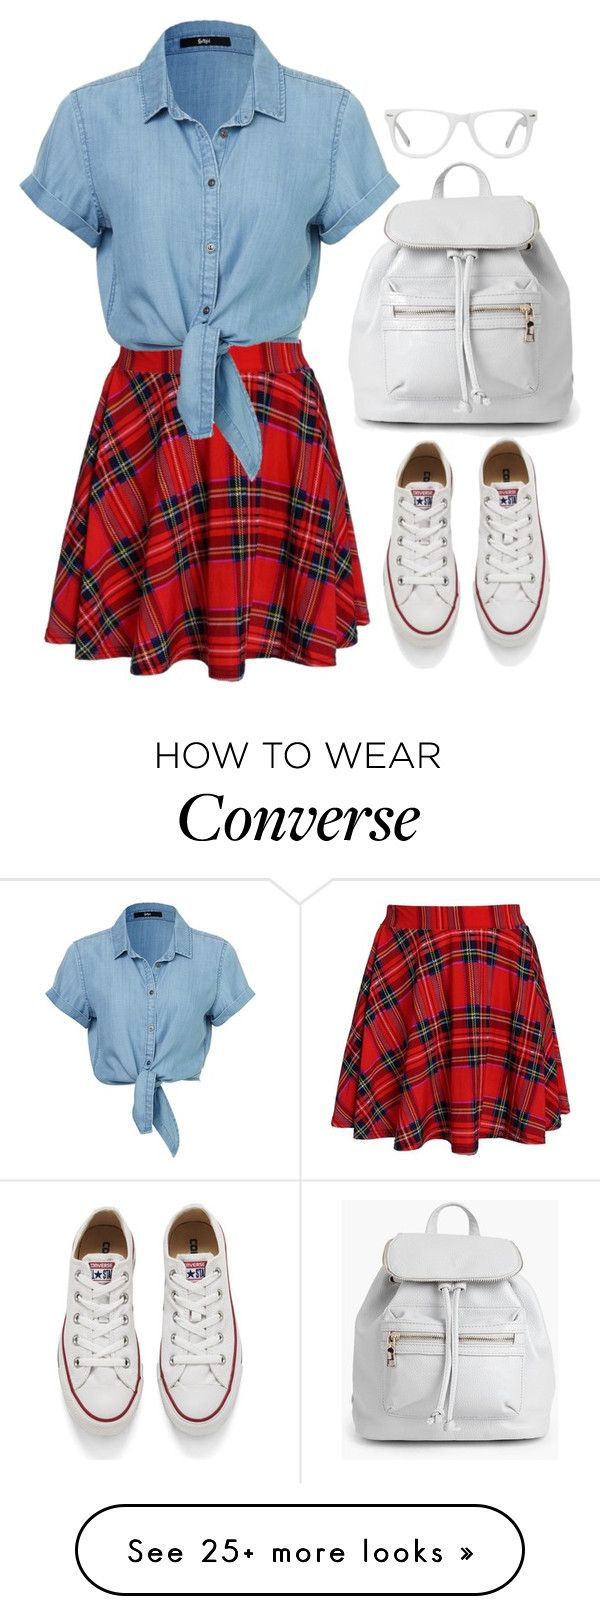 """Ruth"" by goodruth on Polyvore featuring Converse, Boohoo, Muse, women's clothing, women, female, woman, misses and juniors"